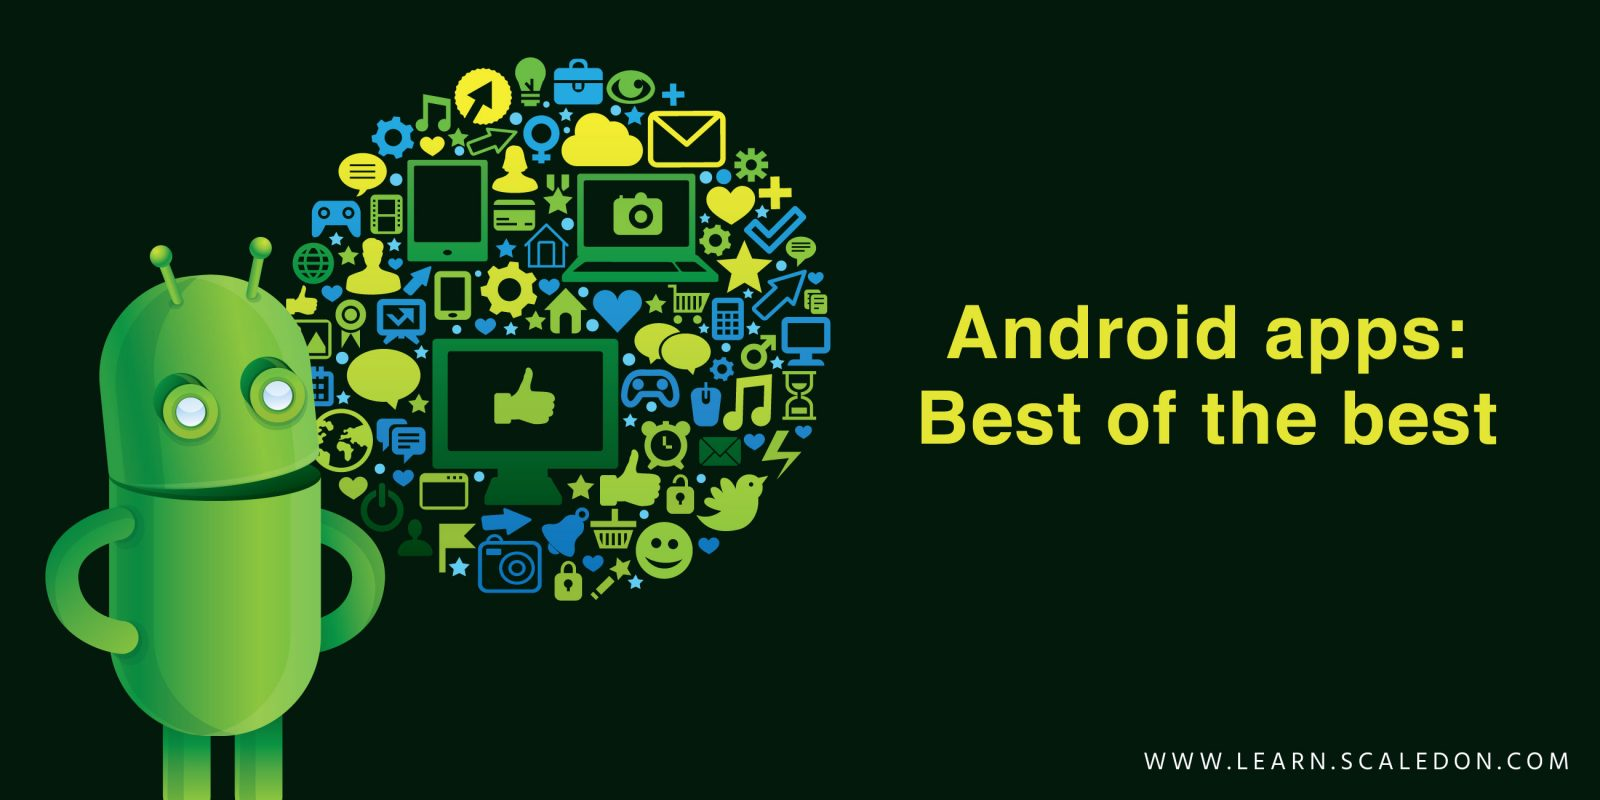 Android apps Best of the best